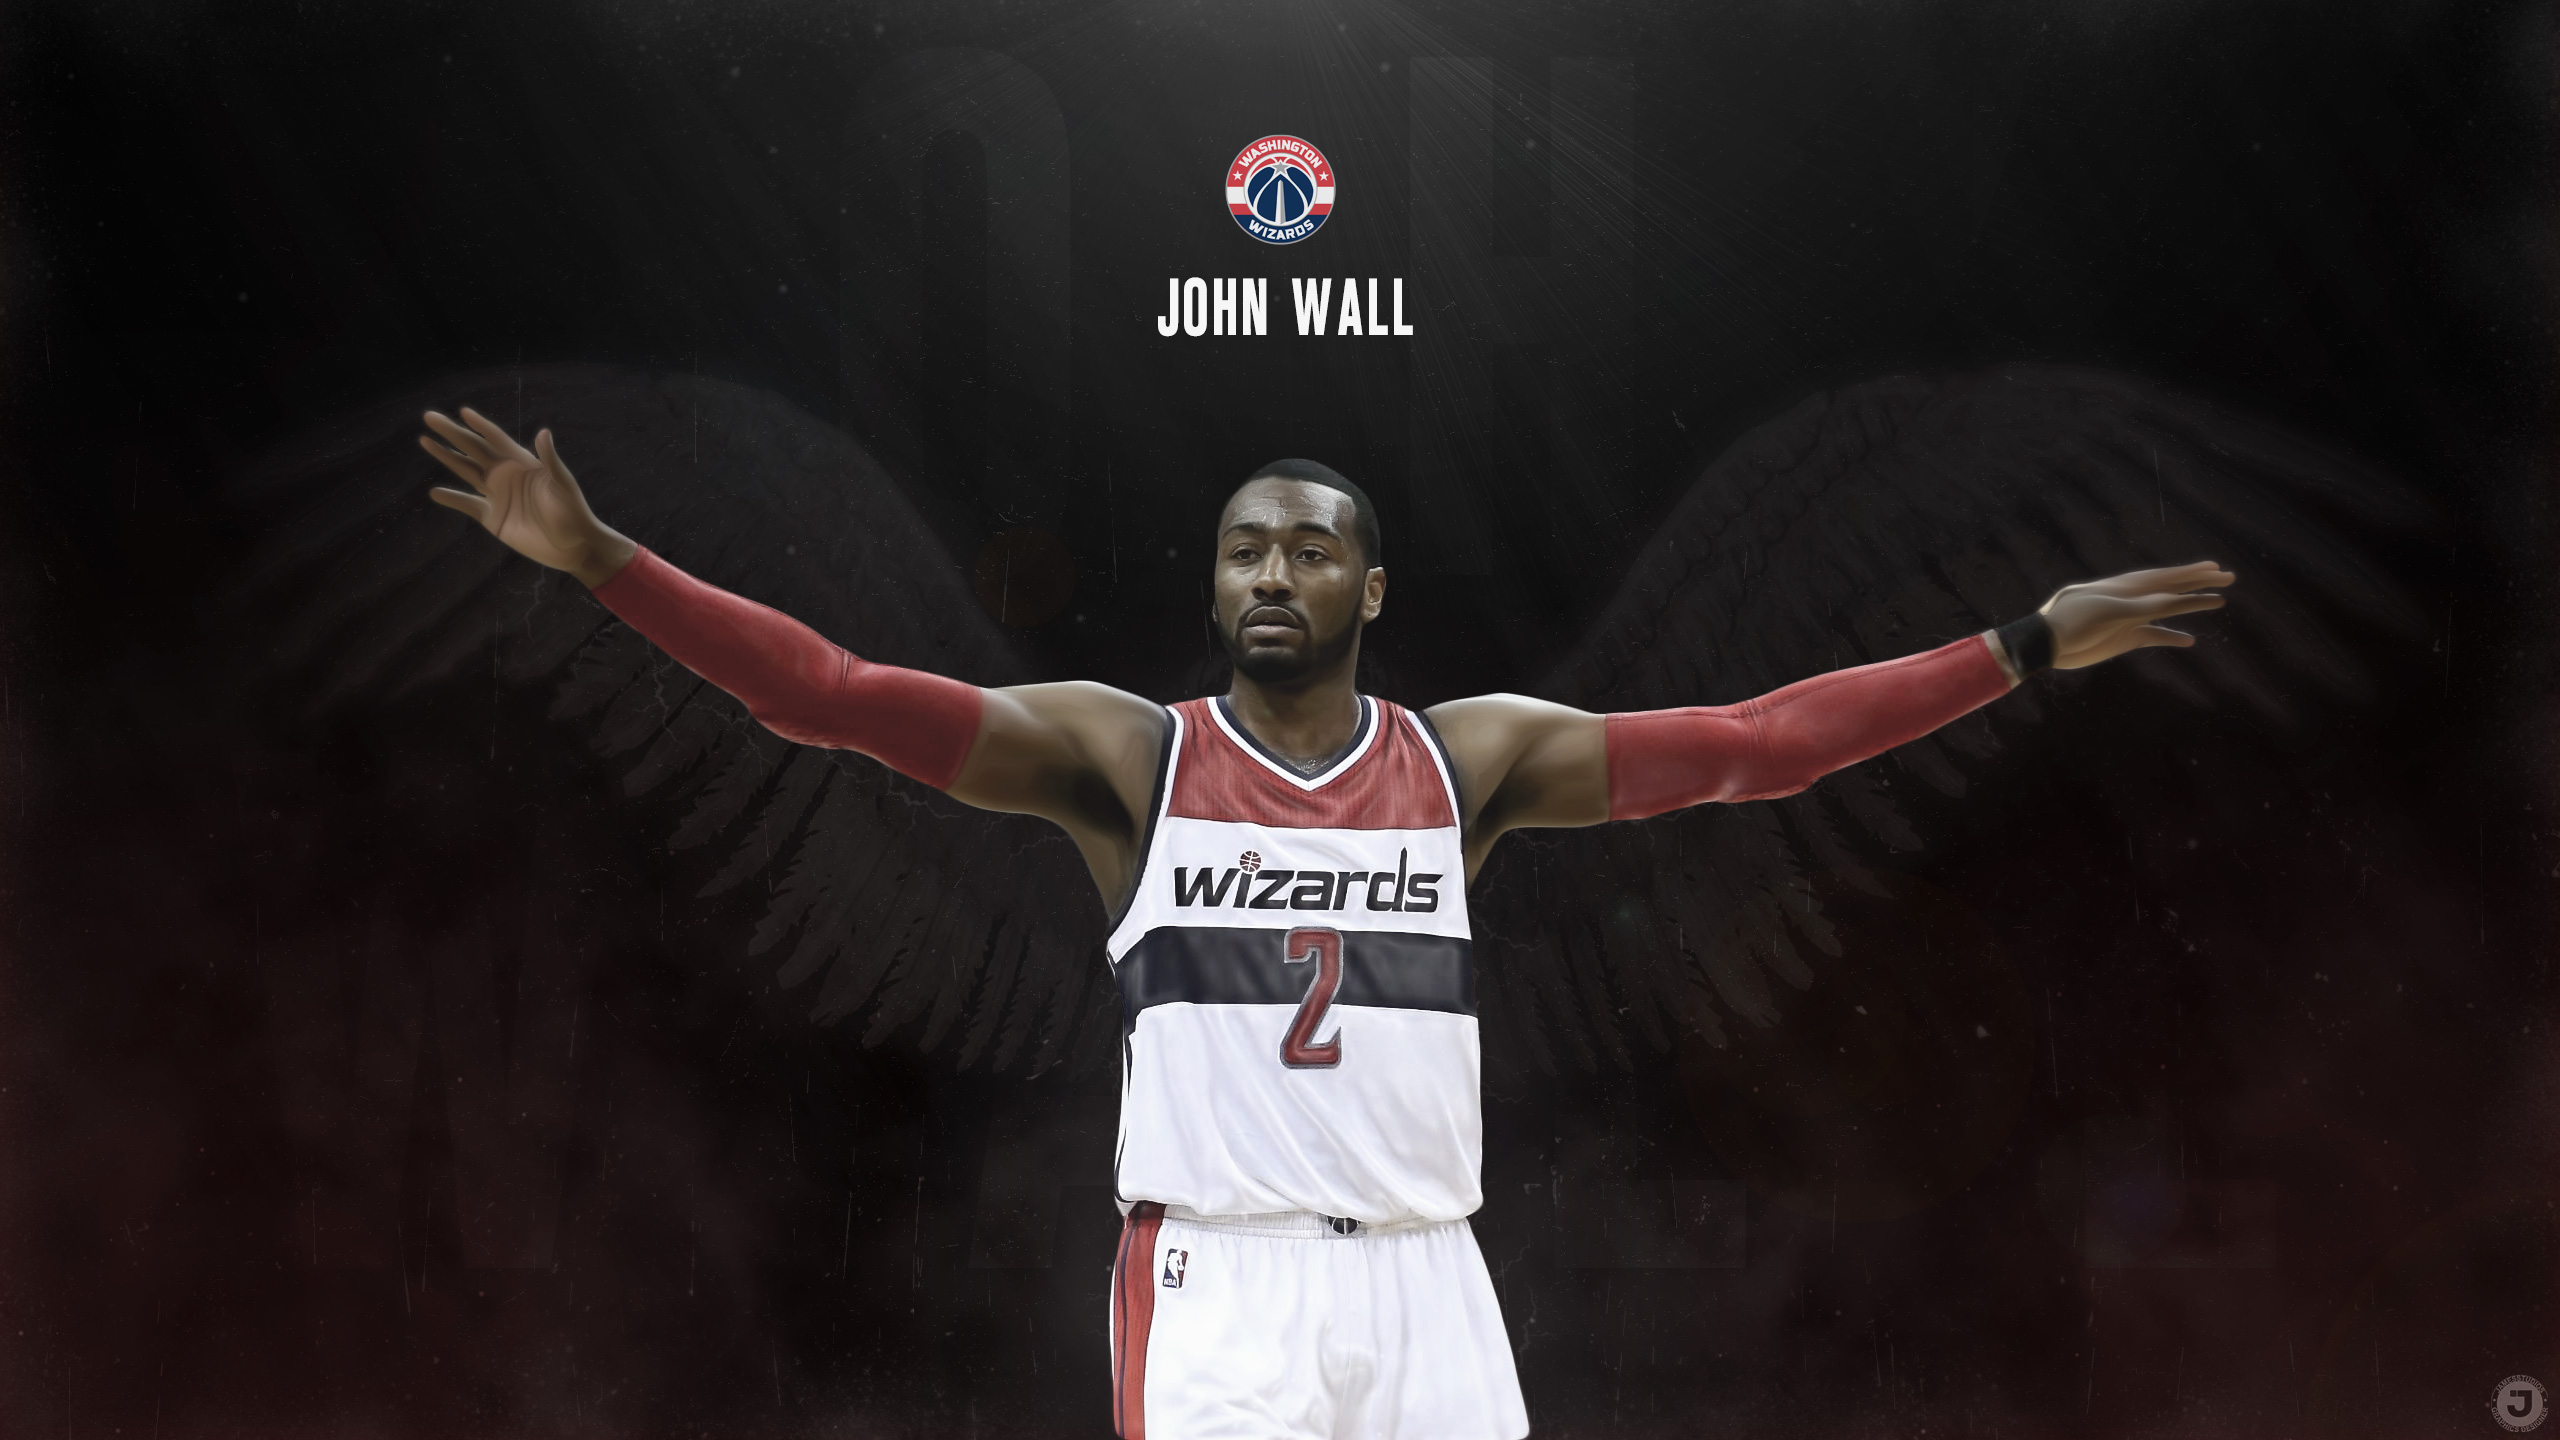 John Wall Wallpaper HD